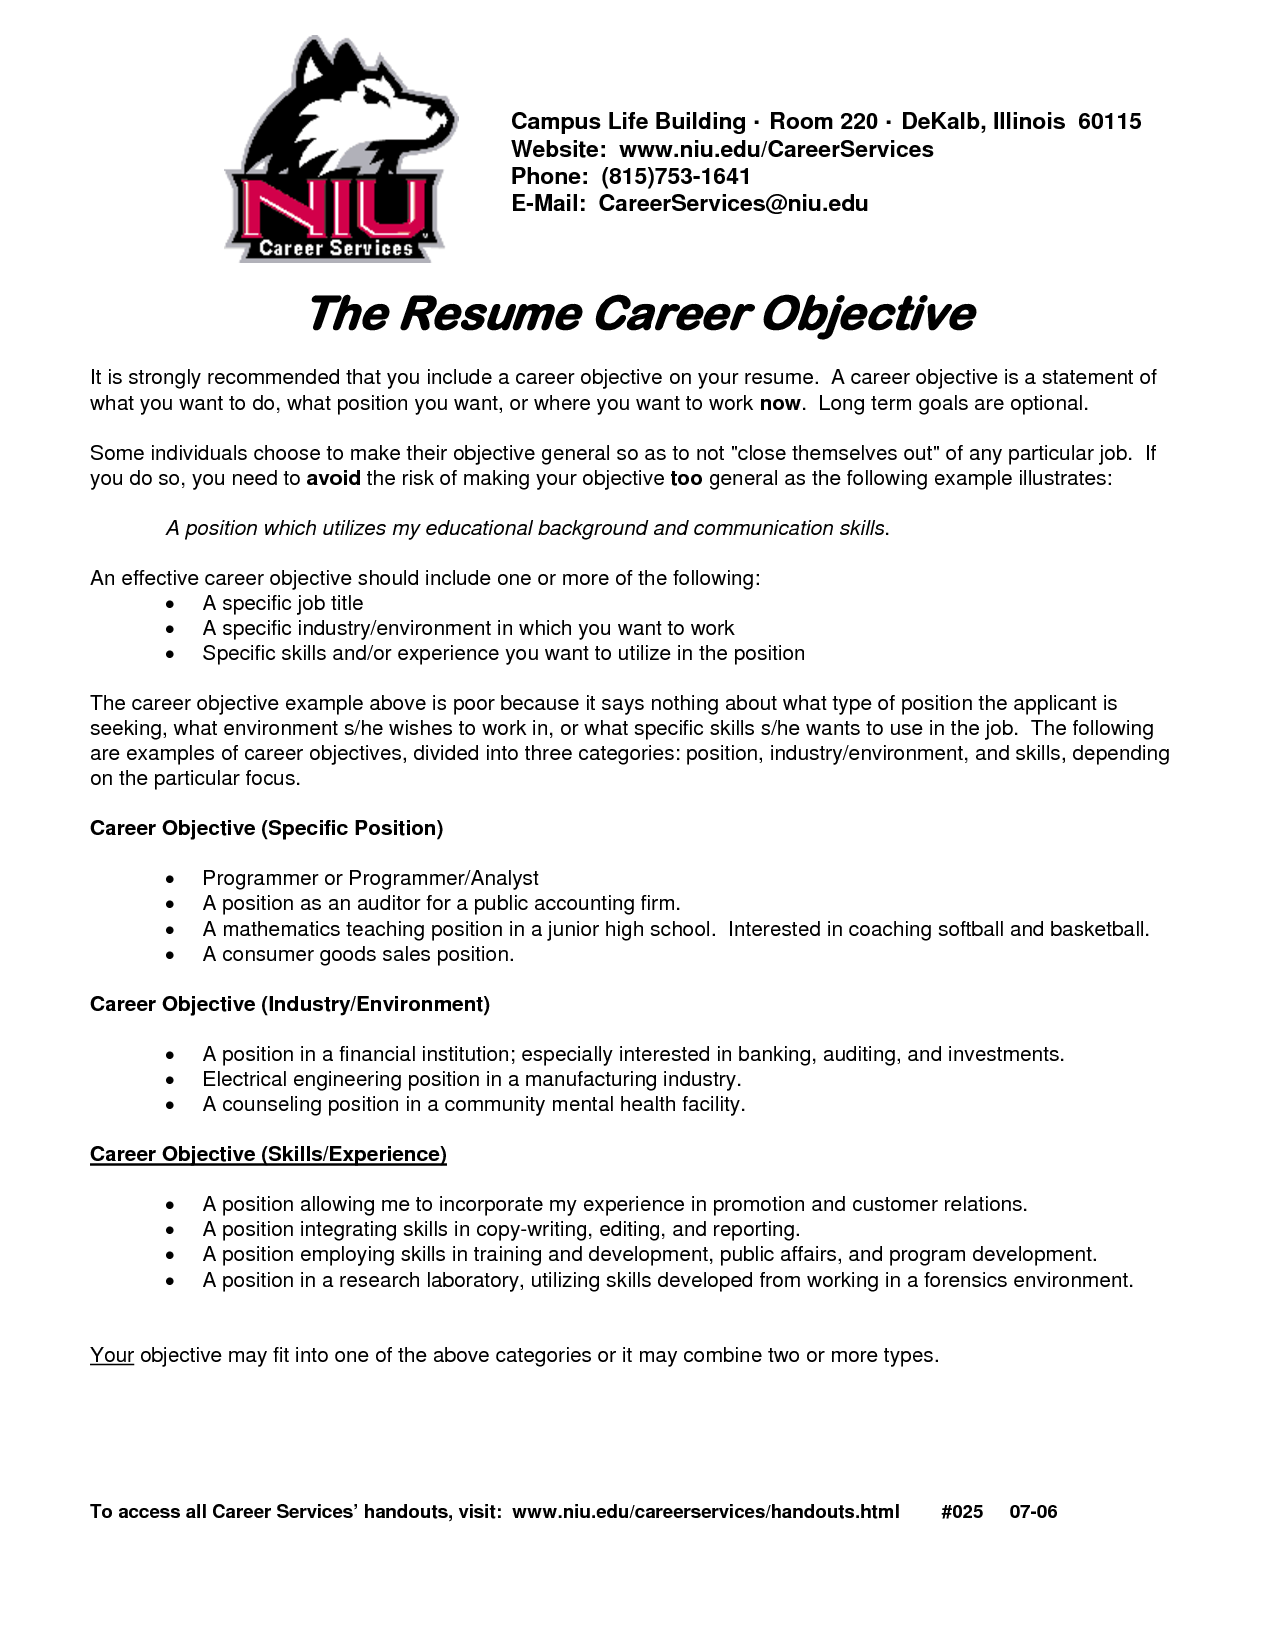 general job objective for resume